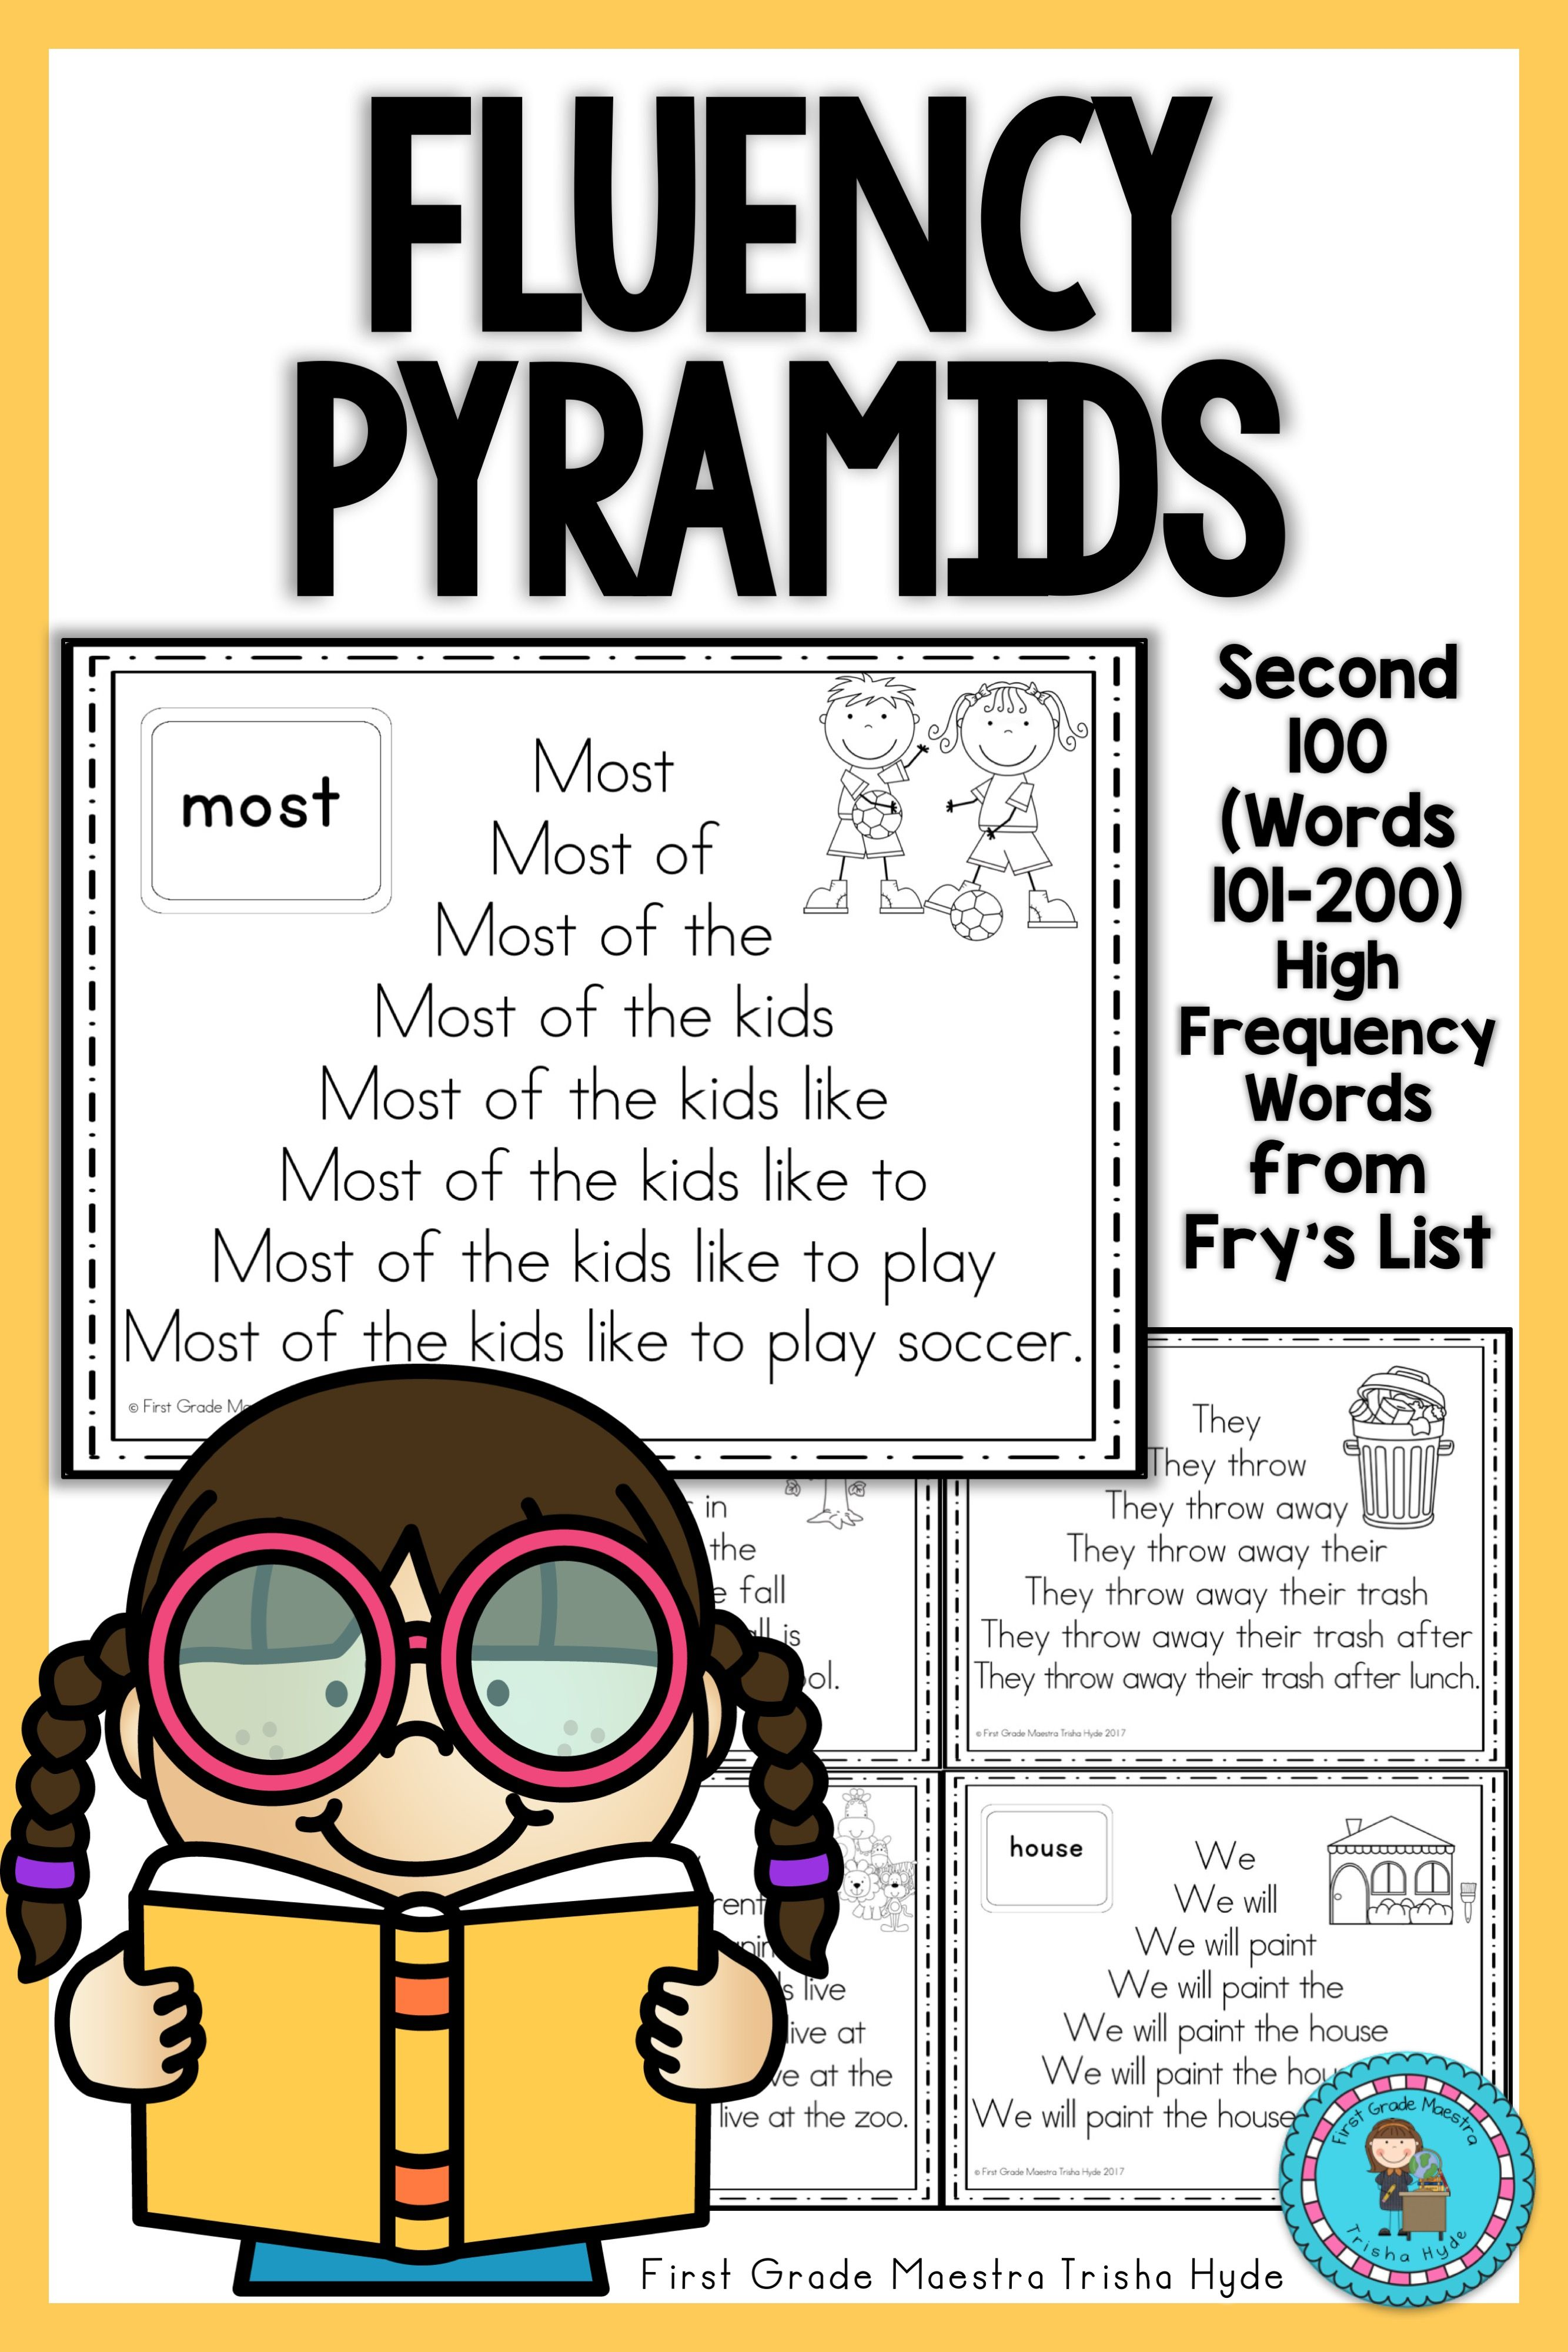 Sight Word Fluency Pyramids Frys Second 100